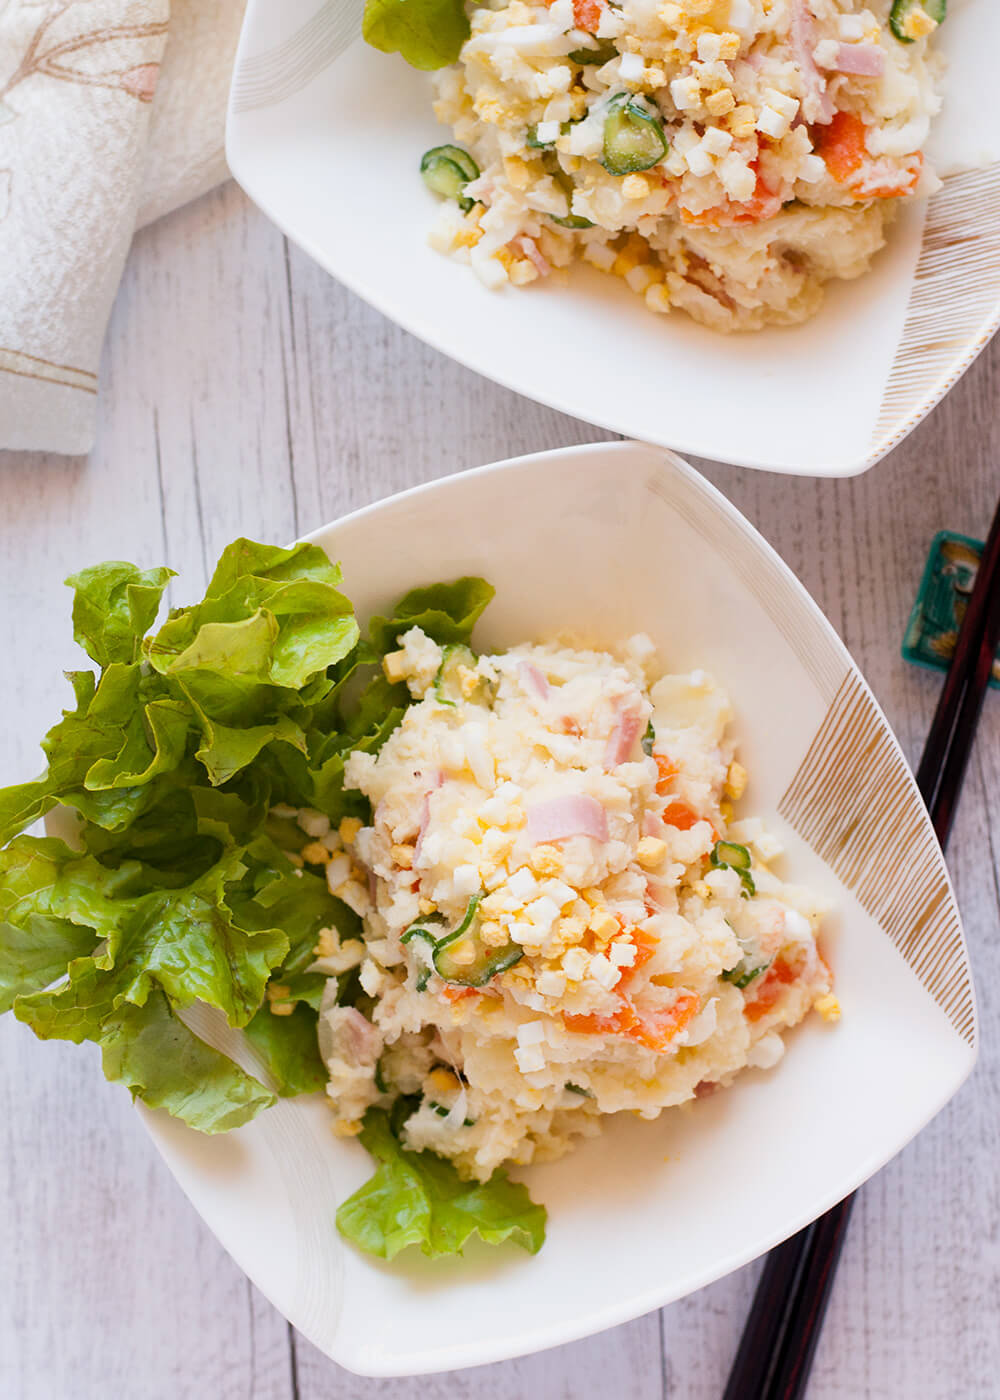 Japanese potato salad is like semi-mashed potatoesmixed withvegetables, ham, egg and mayonnaise. Small pieces of carrots, cucumbers, onions, ham and eggs make it visually appealing. It is not too creamy, not too rich,but flavoursome. What makes this potato salad stand out is the mushy texture and the famous Japanese mayonnaise, Kewpie mayonnaise.